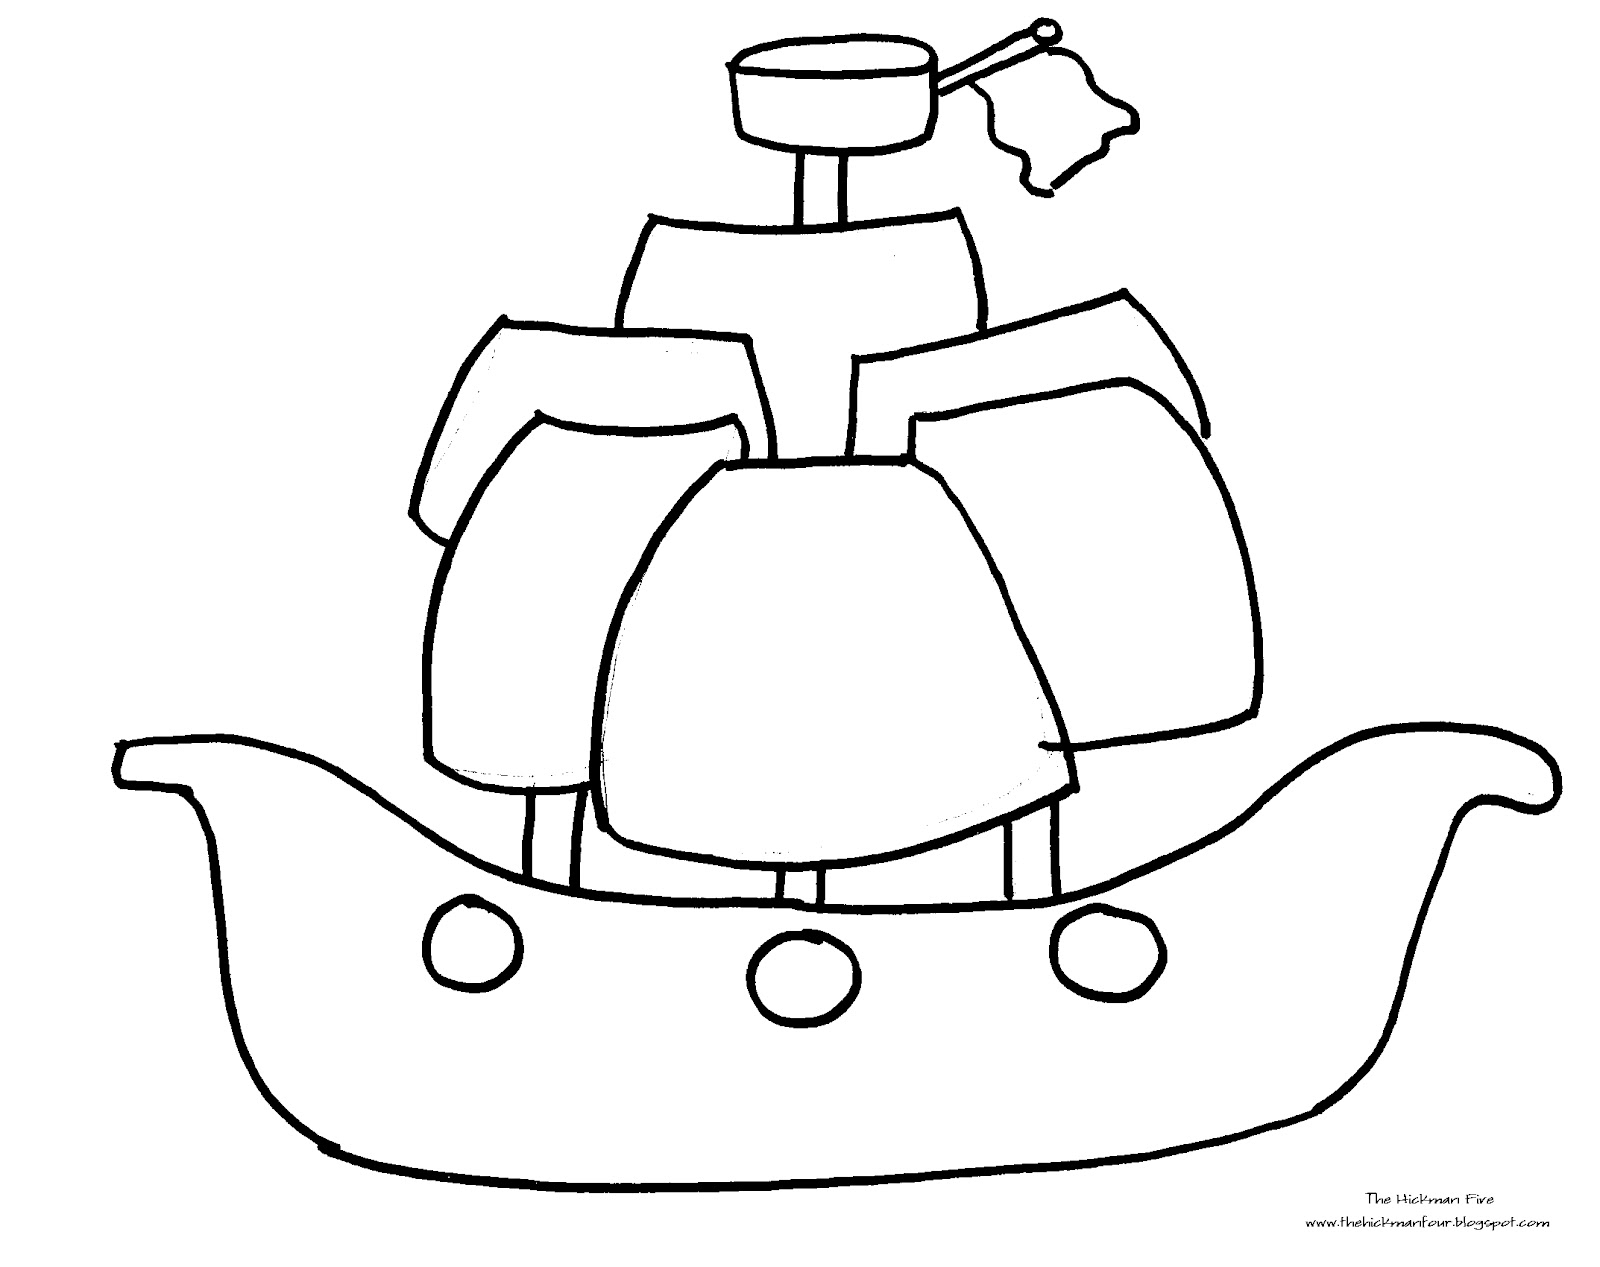 1600x1267 Lovely Pirate Ship Coloring Pages 24 For Coloring For Kids